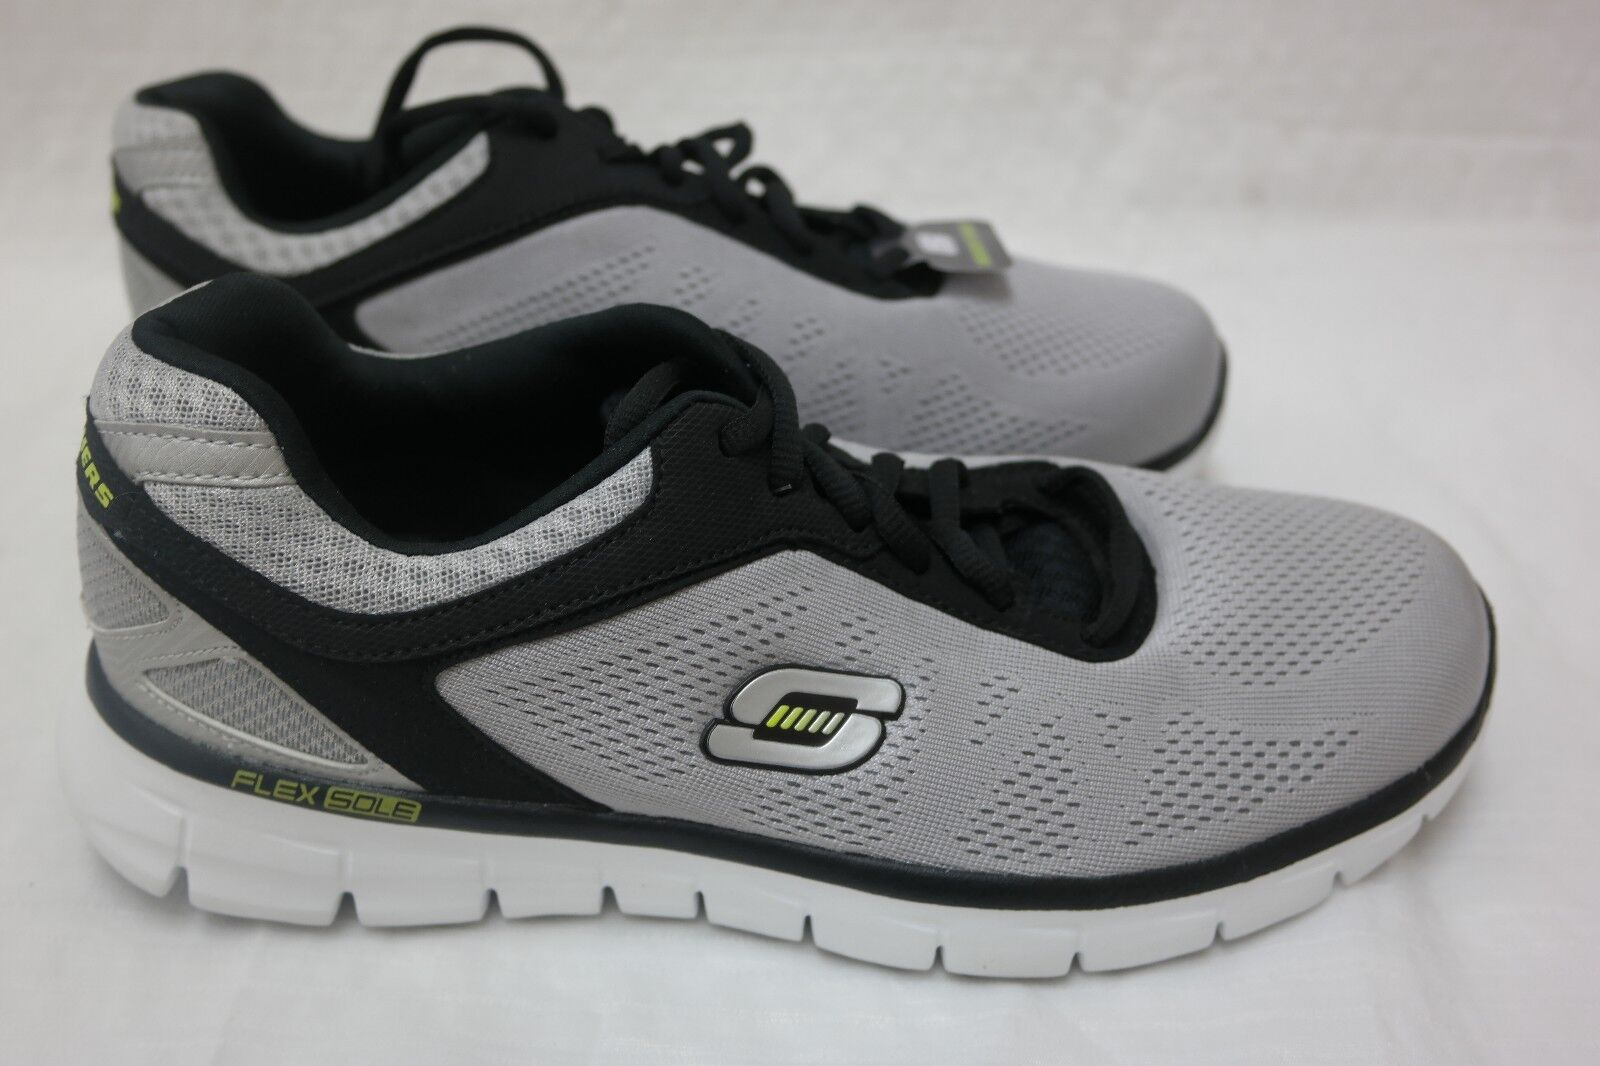 New!! Men's Skechers 50068 Skech-Knit Sneaker Light Grey/Black F30 Casual wild